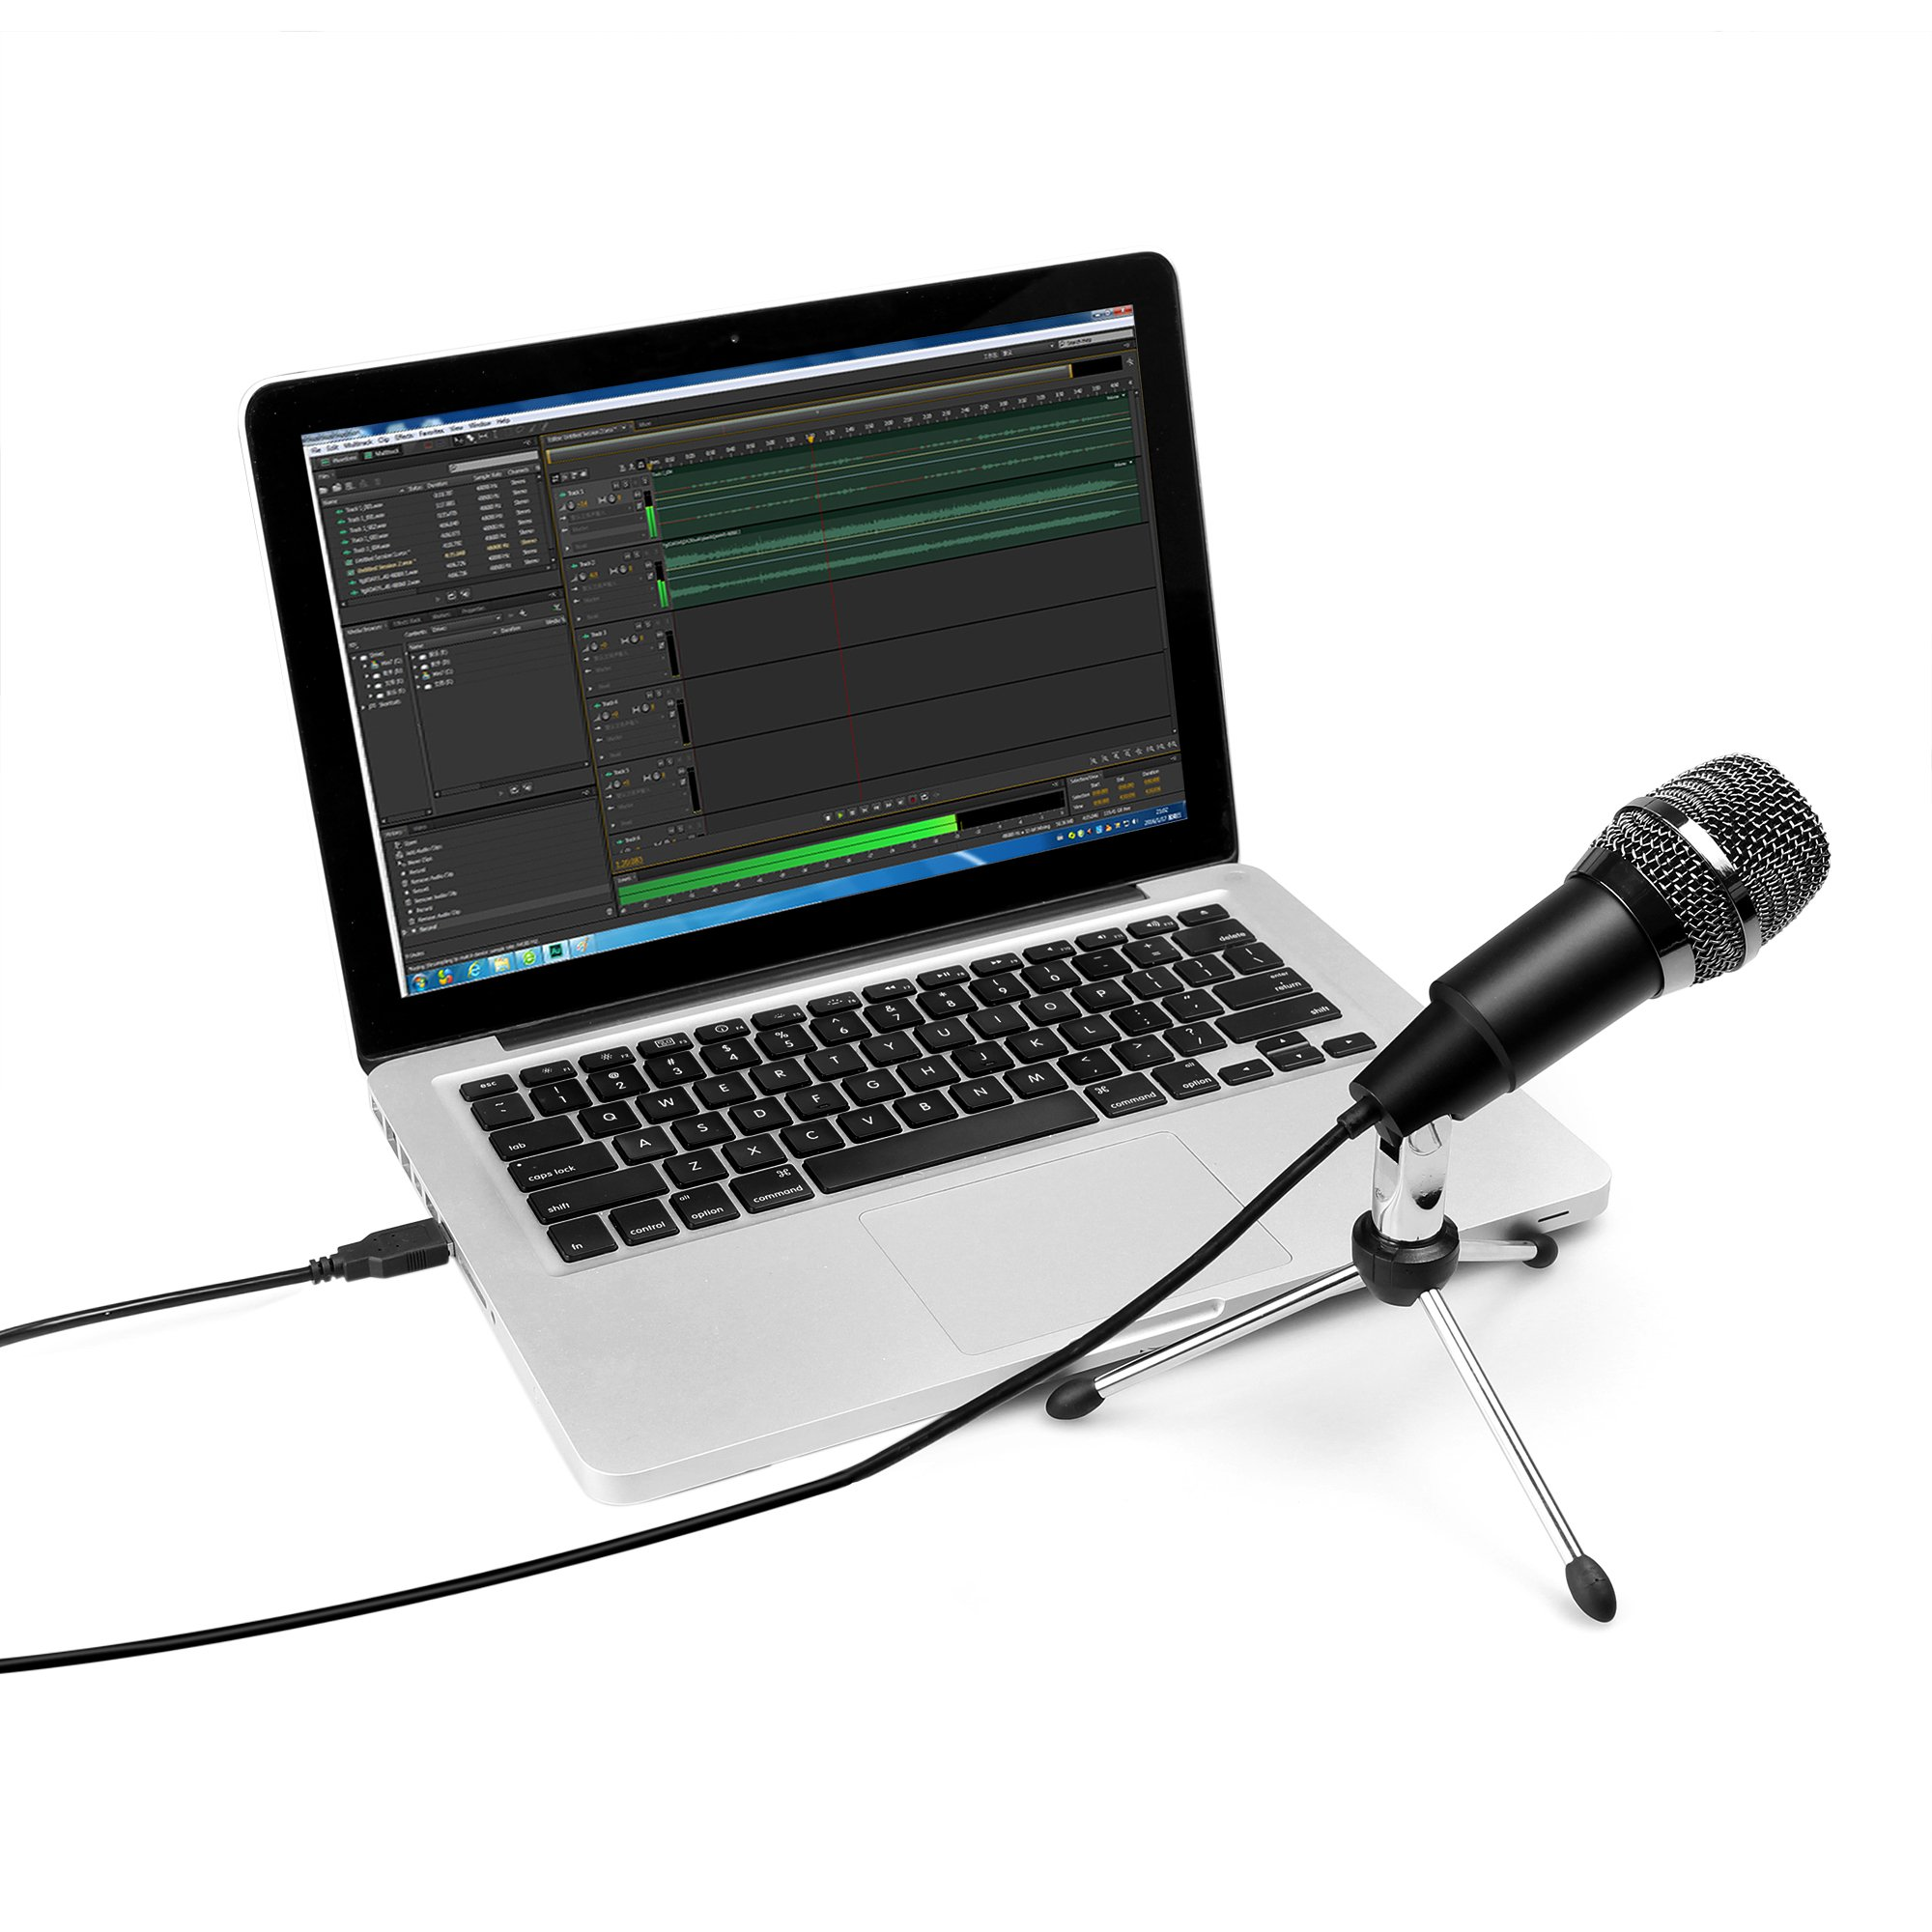 FIFINE TECHNOLOGY USB Microphone,Fifine Plug &Play Home Studio USB Condenser Microphone for Skype, Recordings for YouTube, Google Voice Search, Games(Windows/Mac)-K668 by FIFINE TECHNOLOGY (Image #5)